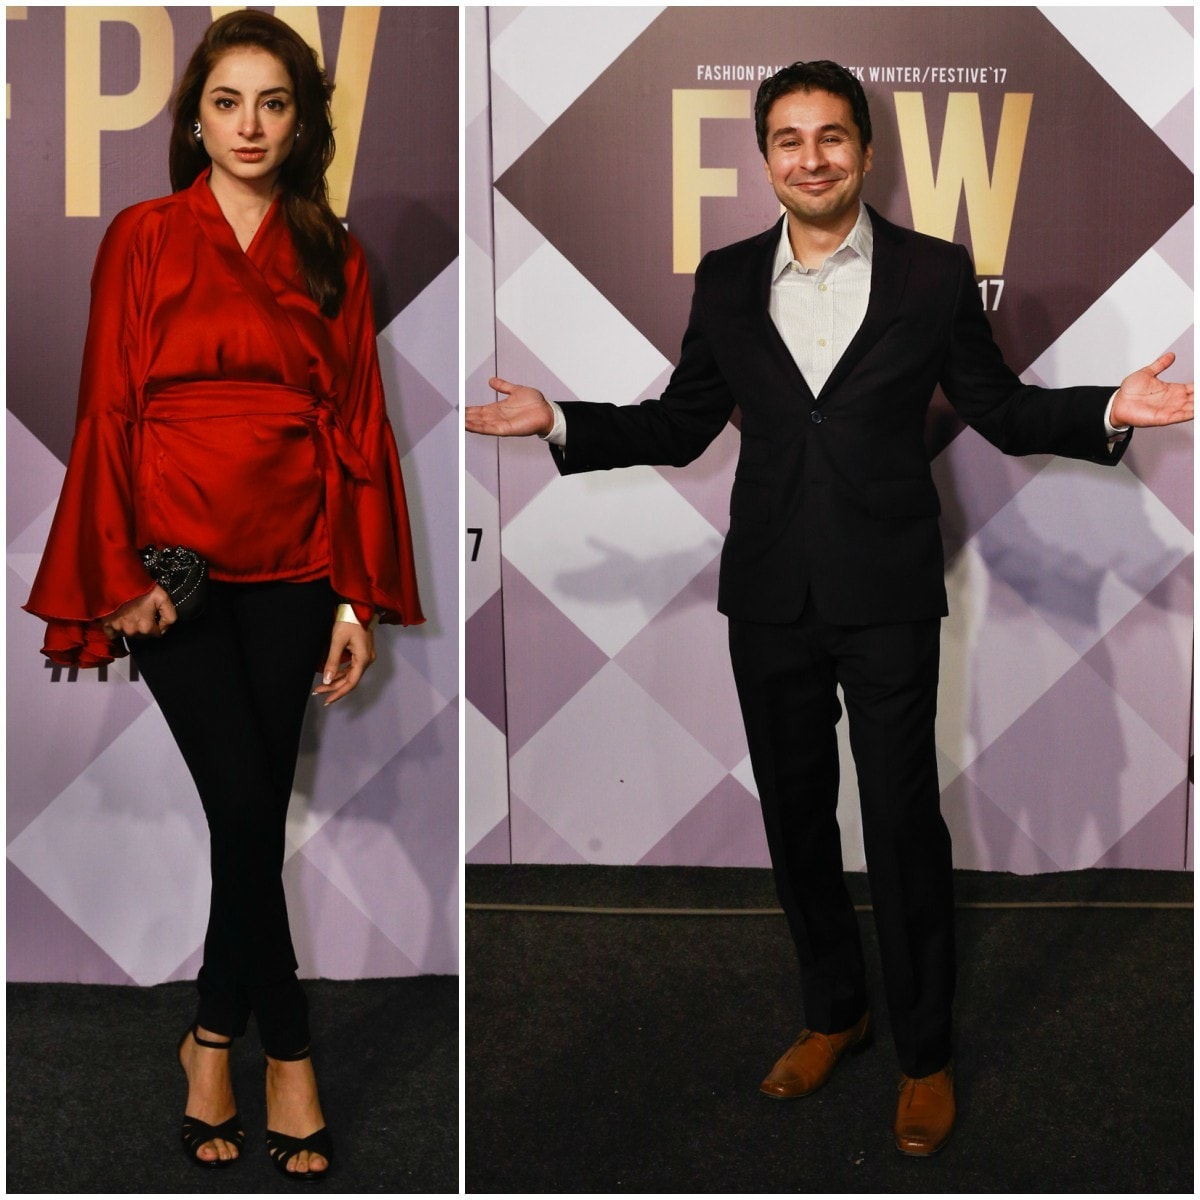 Saad Haroon and Sarwat Gillani at FPW Day 1's red carpet